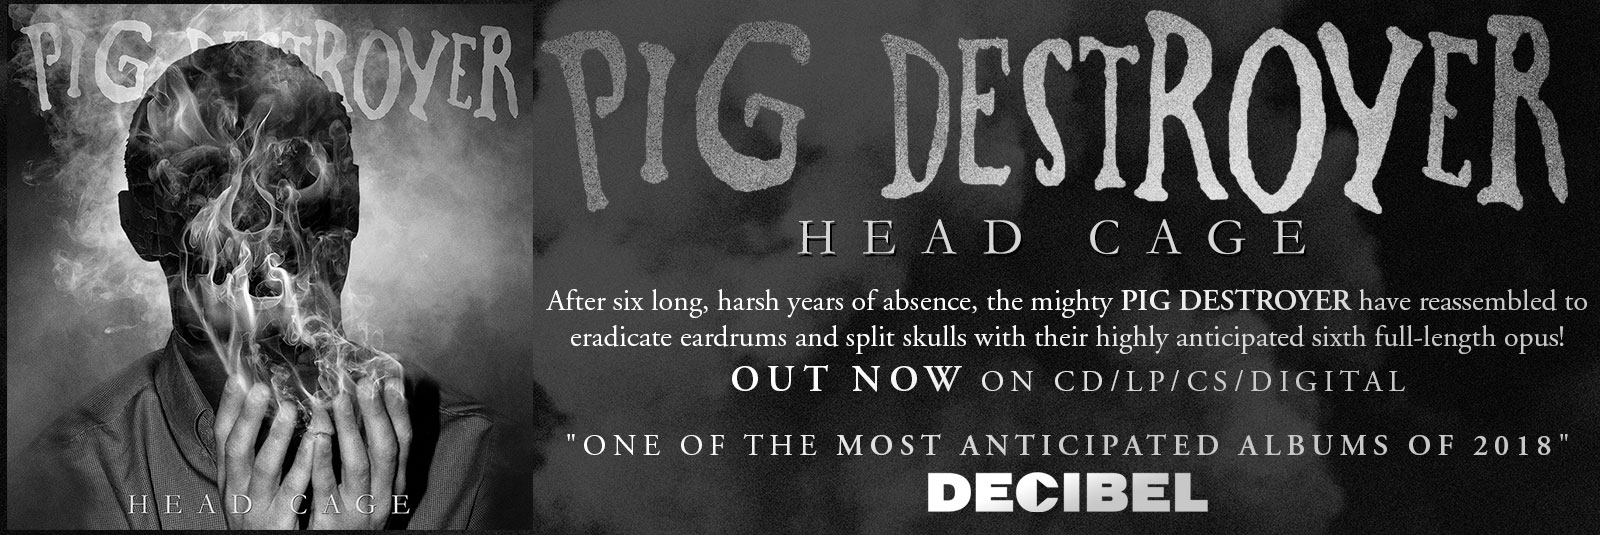 pig-destroyer-head-cage-grindcore-relapse-out-now